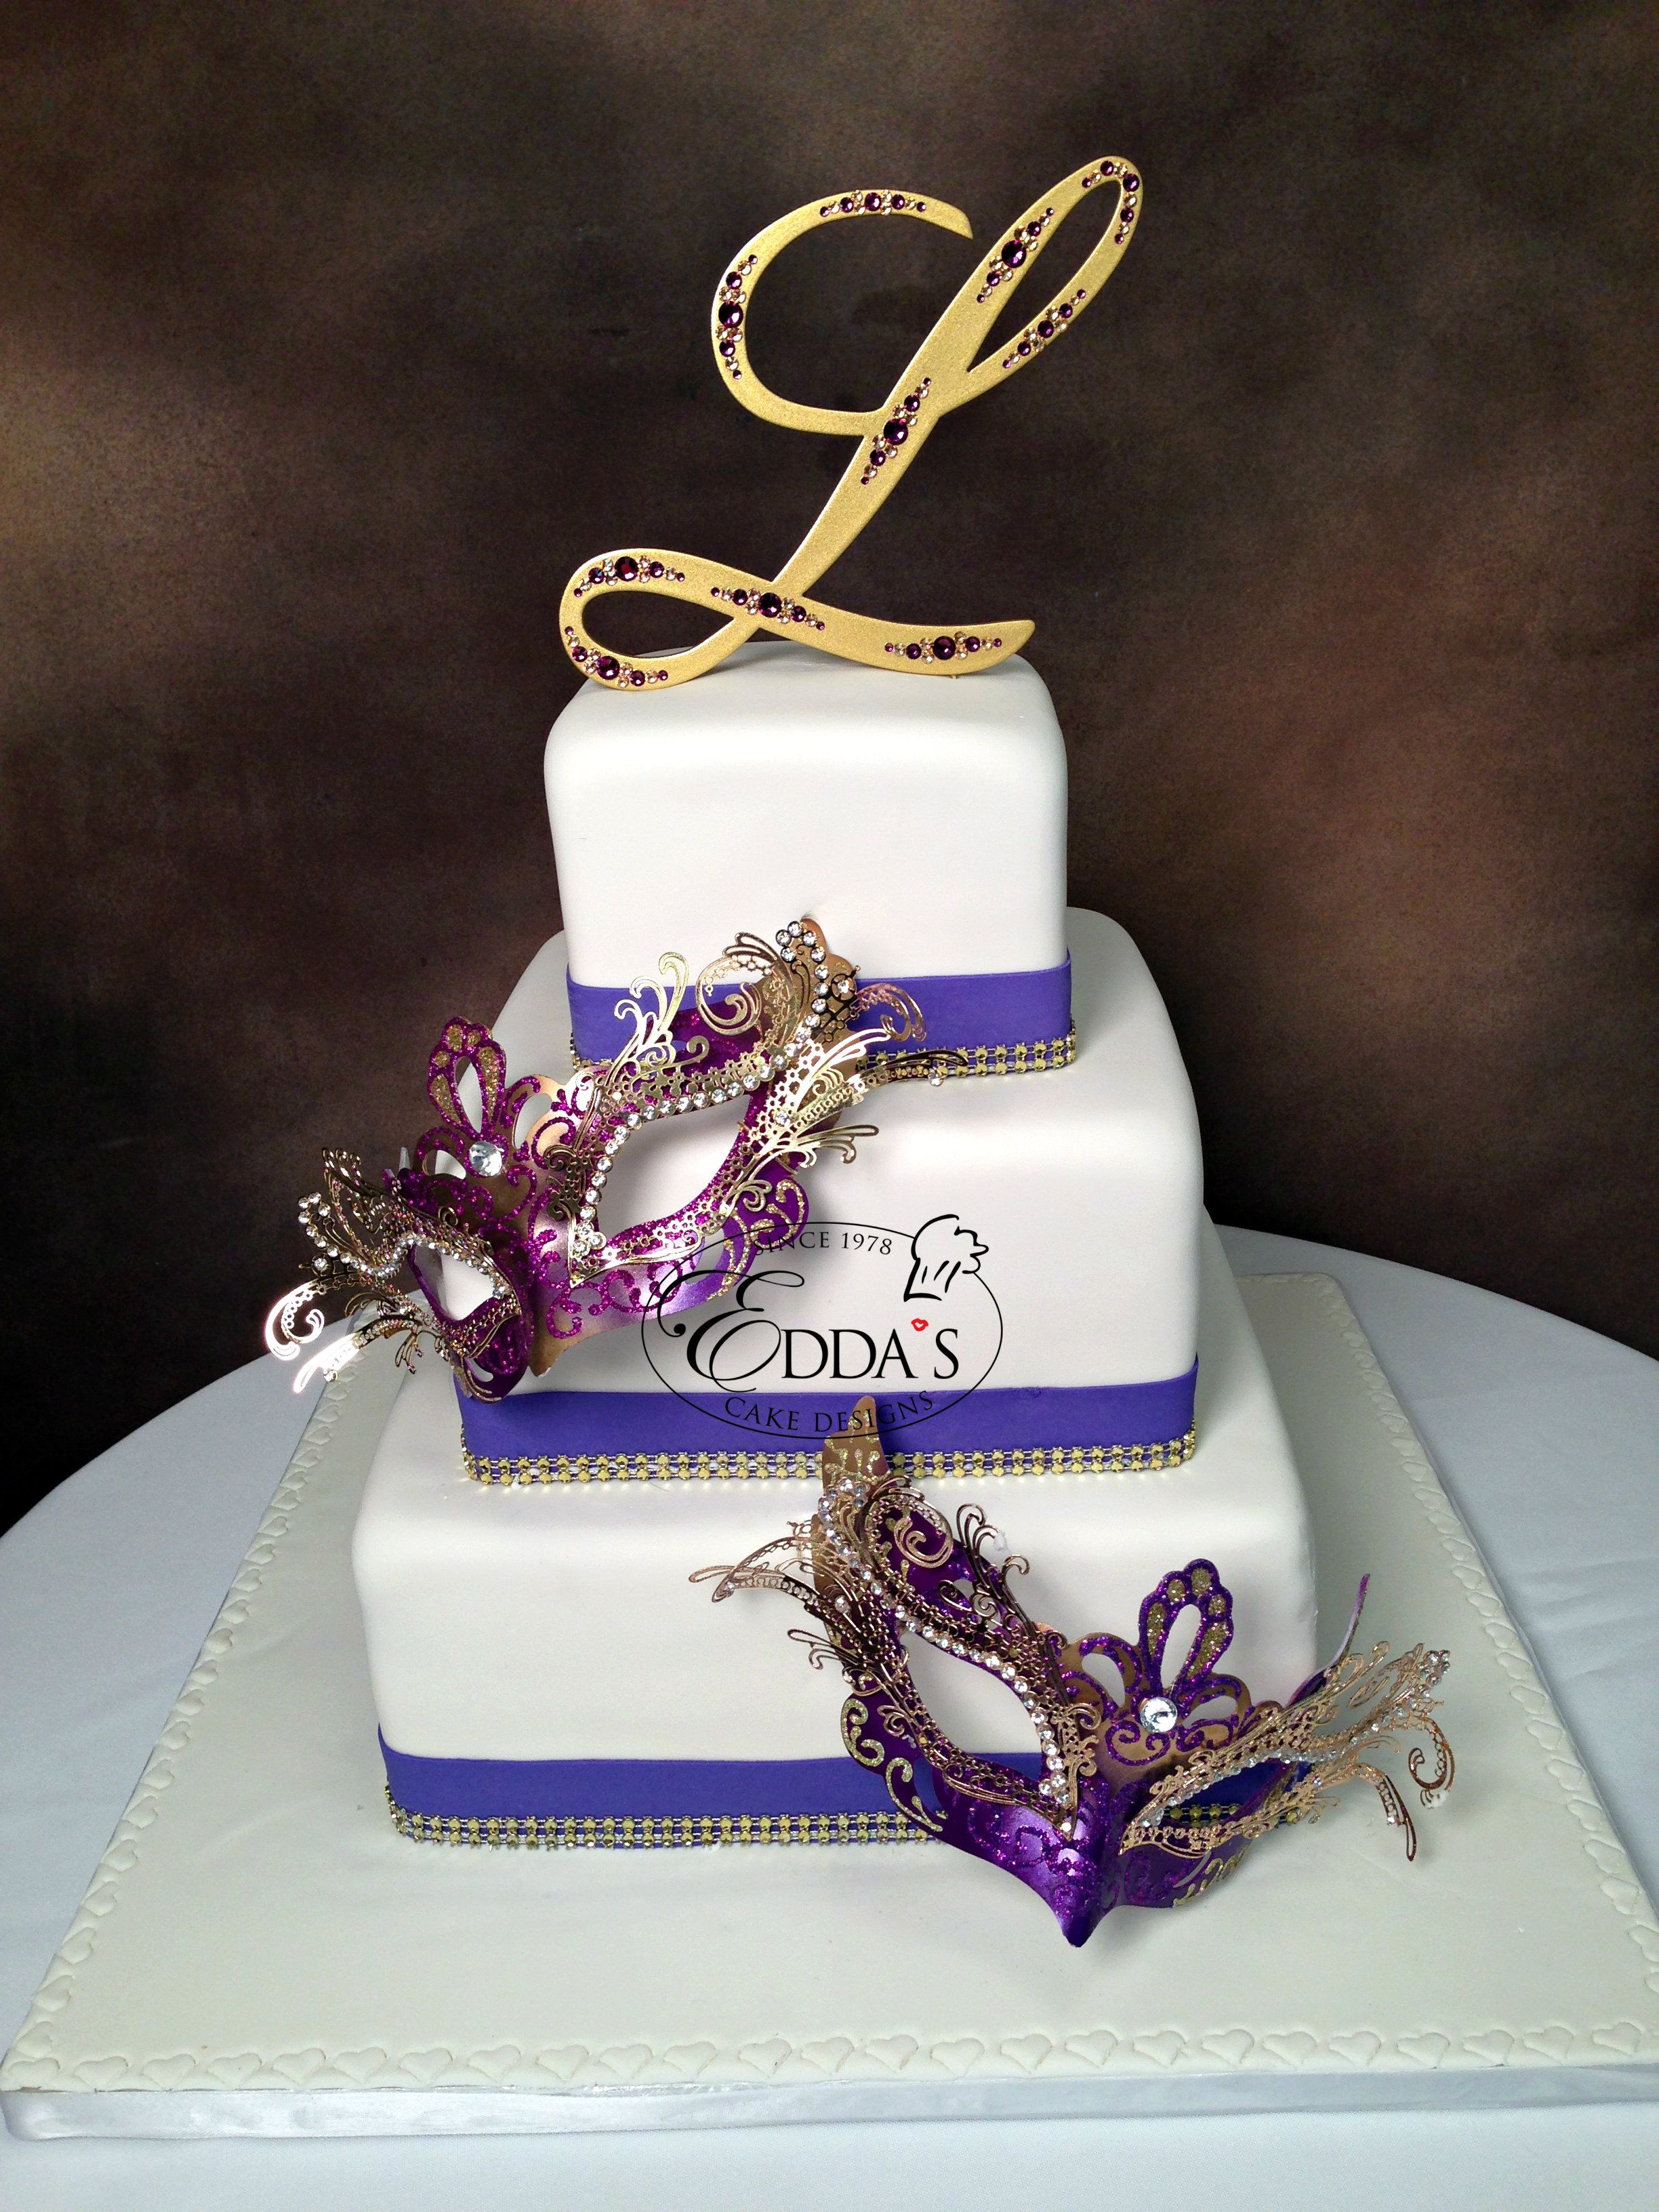 It's a great start to #TastyTuesday here at Edda's Cake Designs! #SQ6 #EddasCakes - http://eddascakedesigns.com